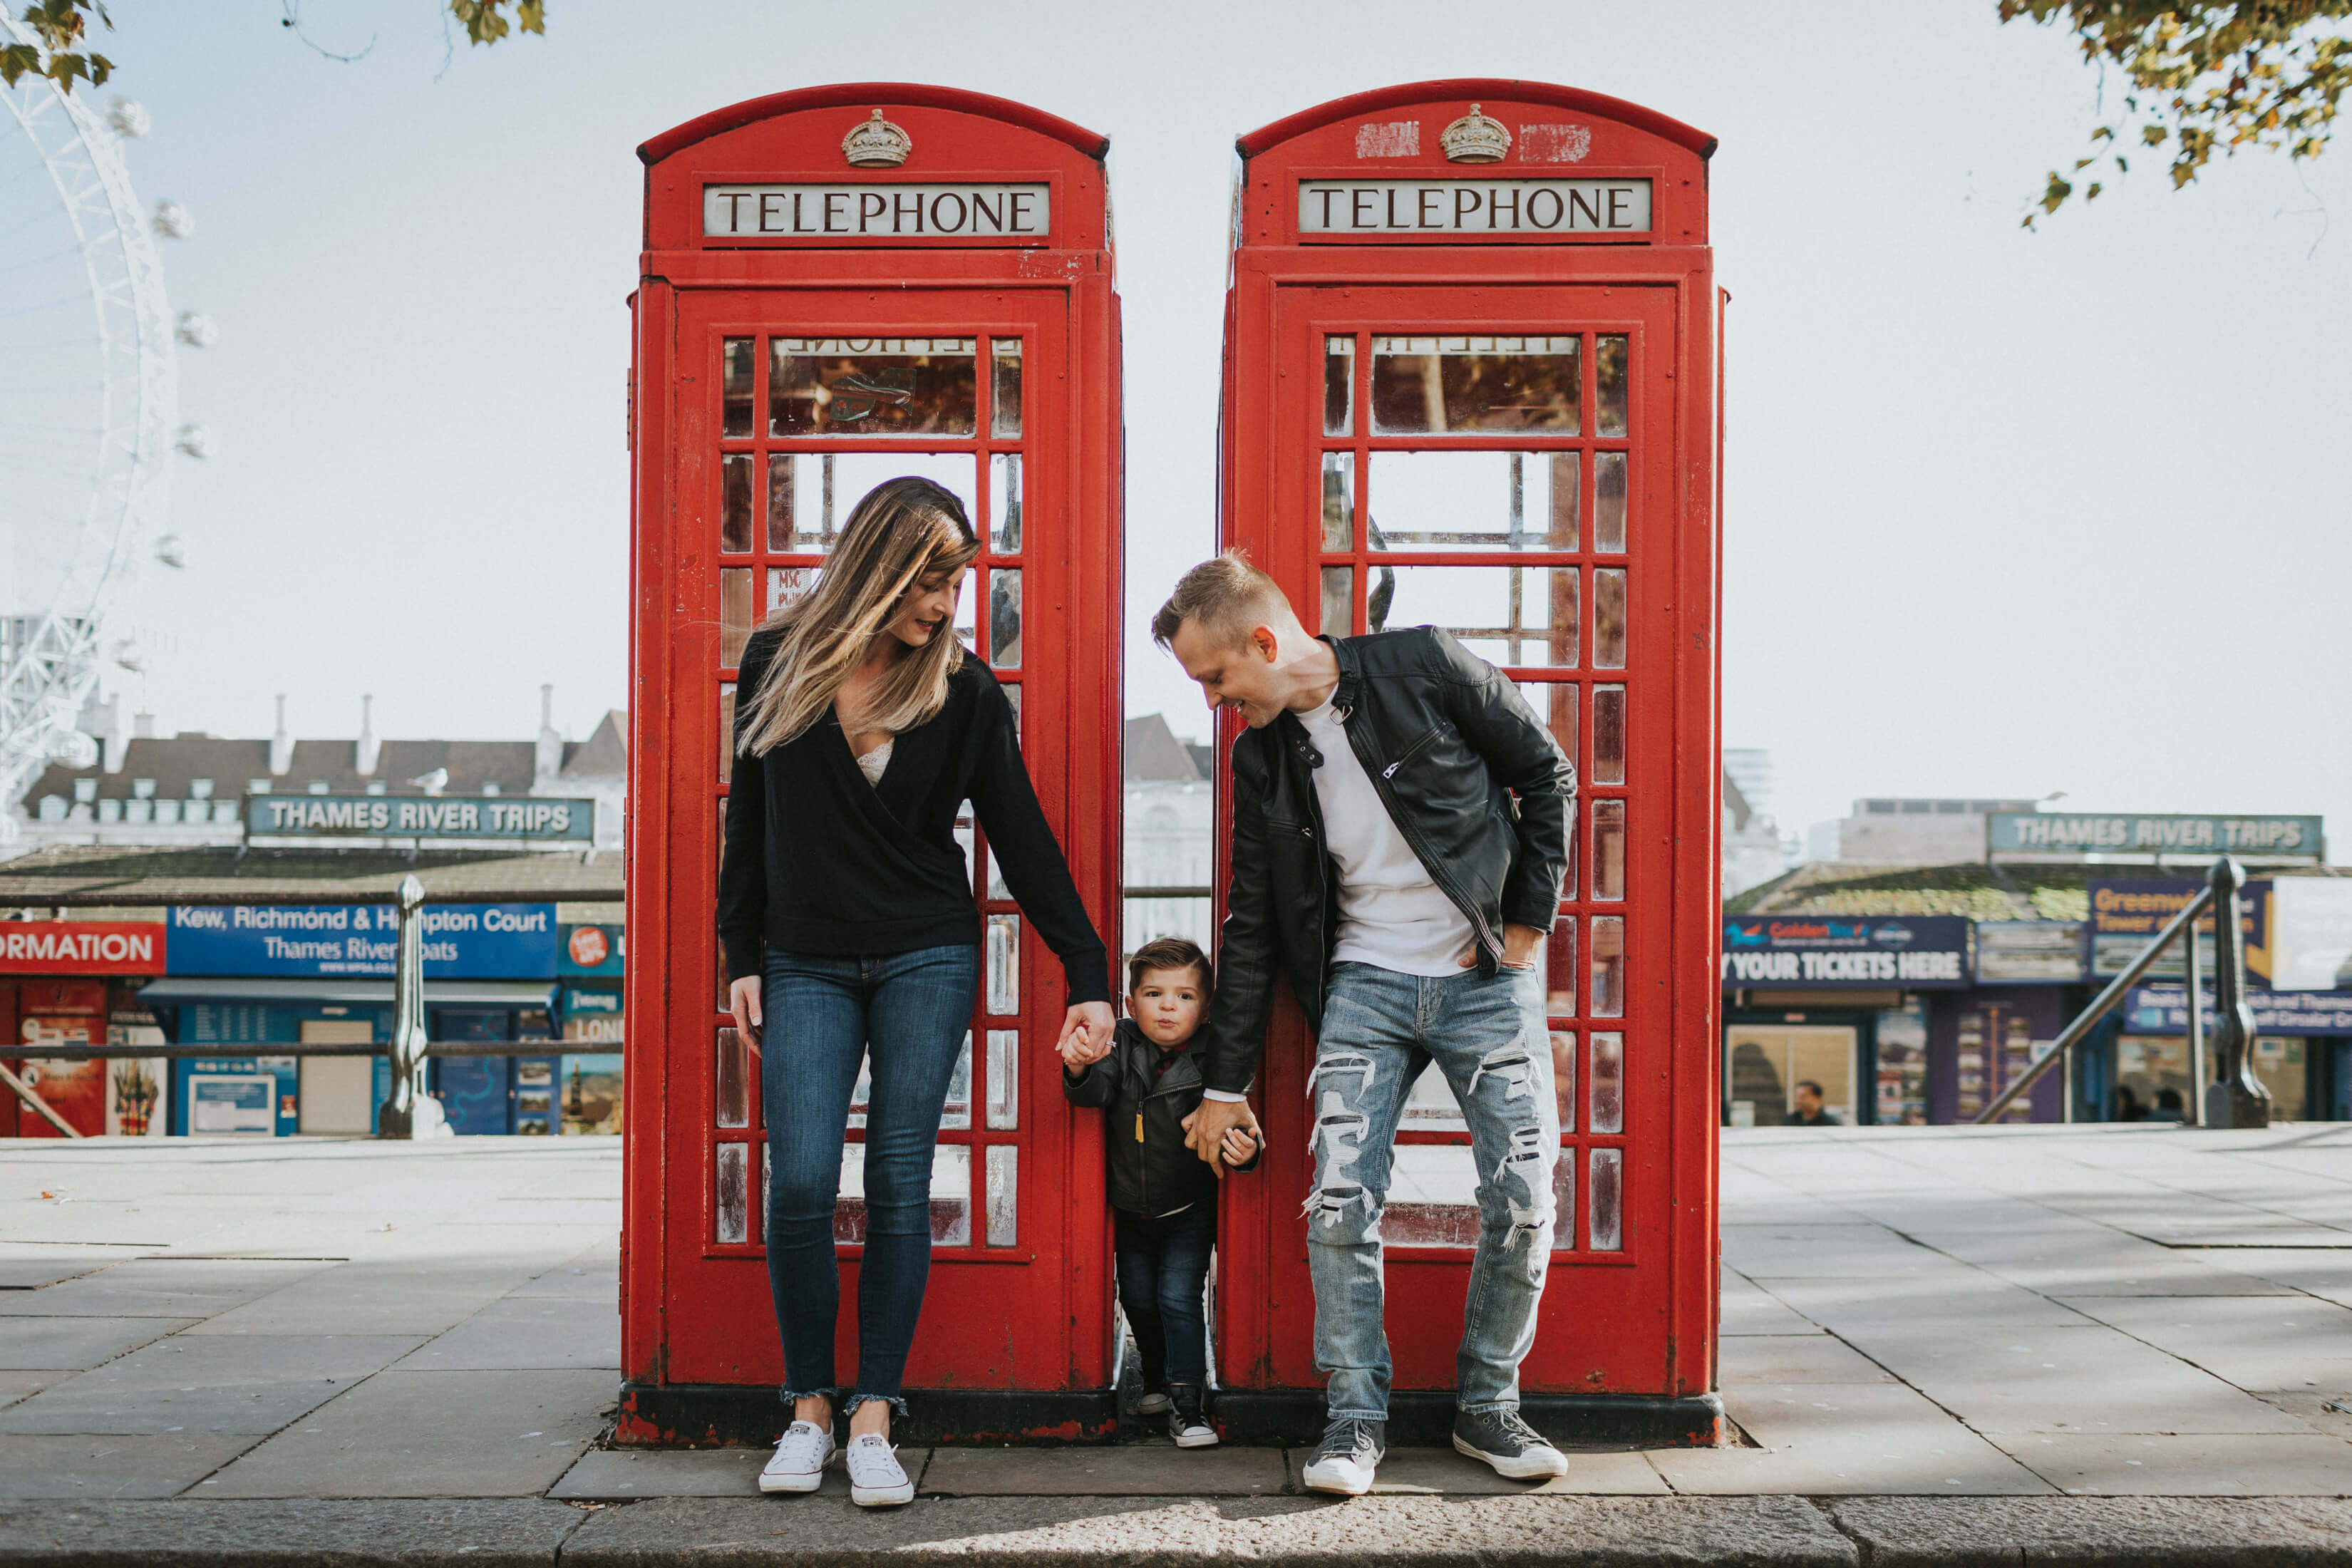 family of three, with a small boy standing in front of a red phone booth in London, England